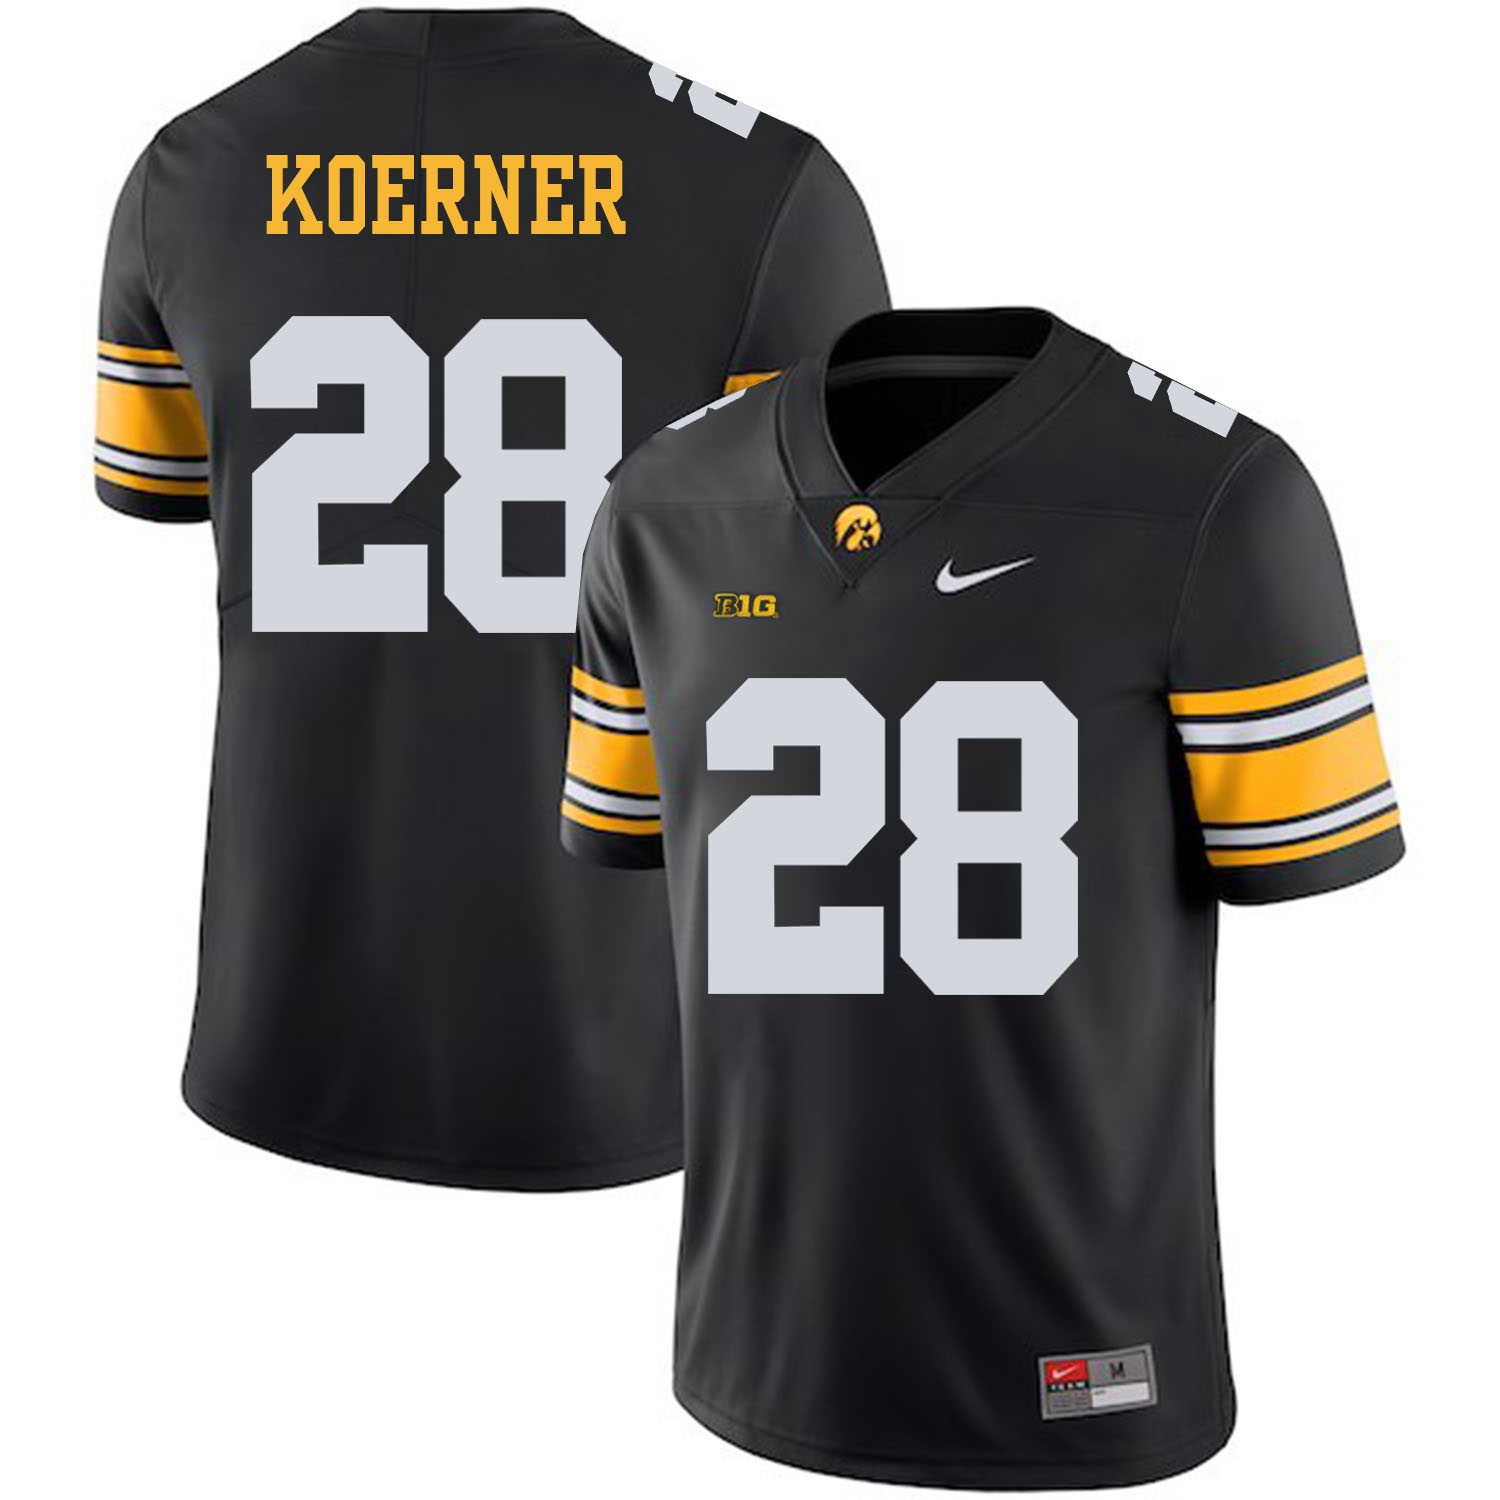 Iowa Hawkeyes 28 Jack Koerner Black College Football Jersey